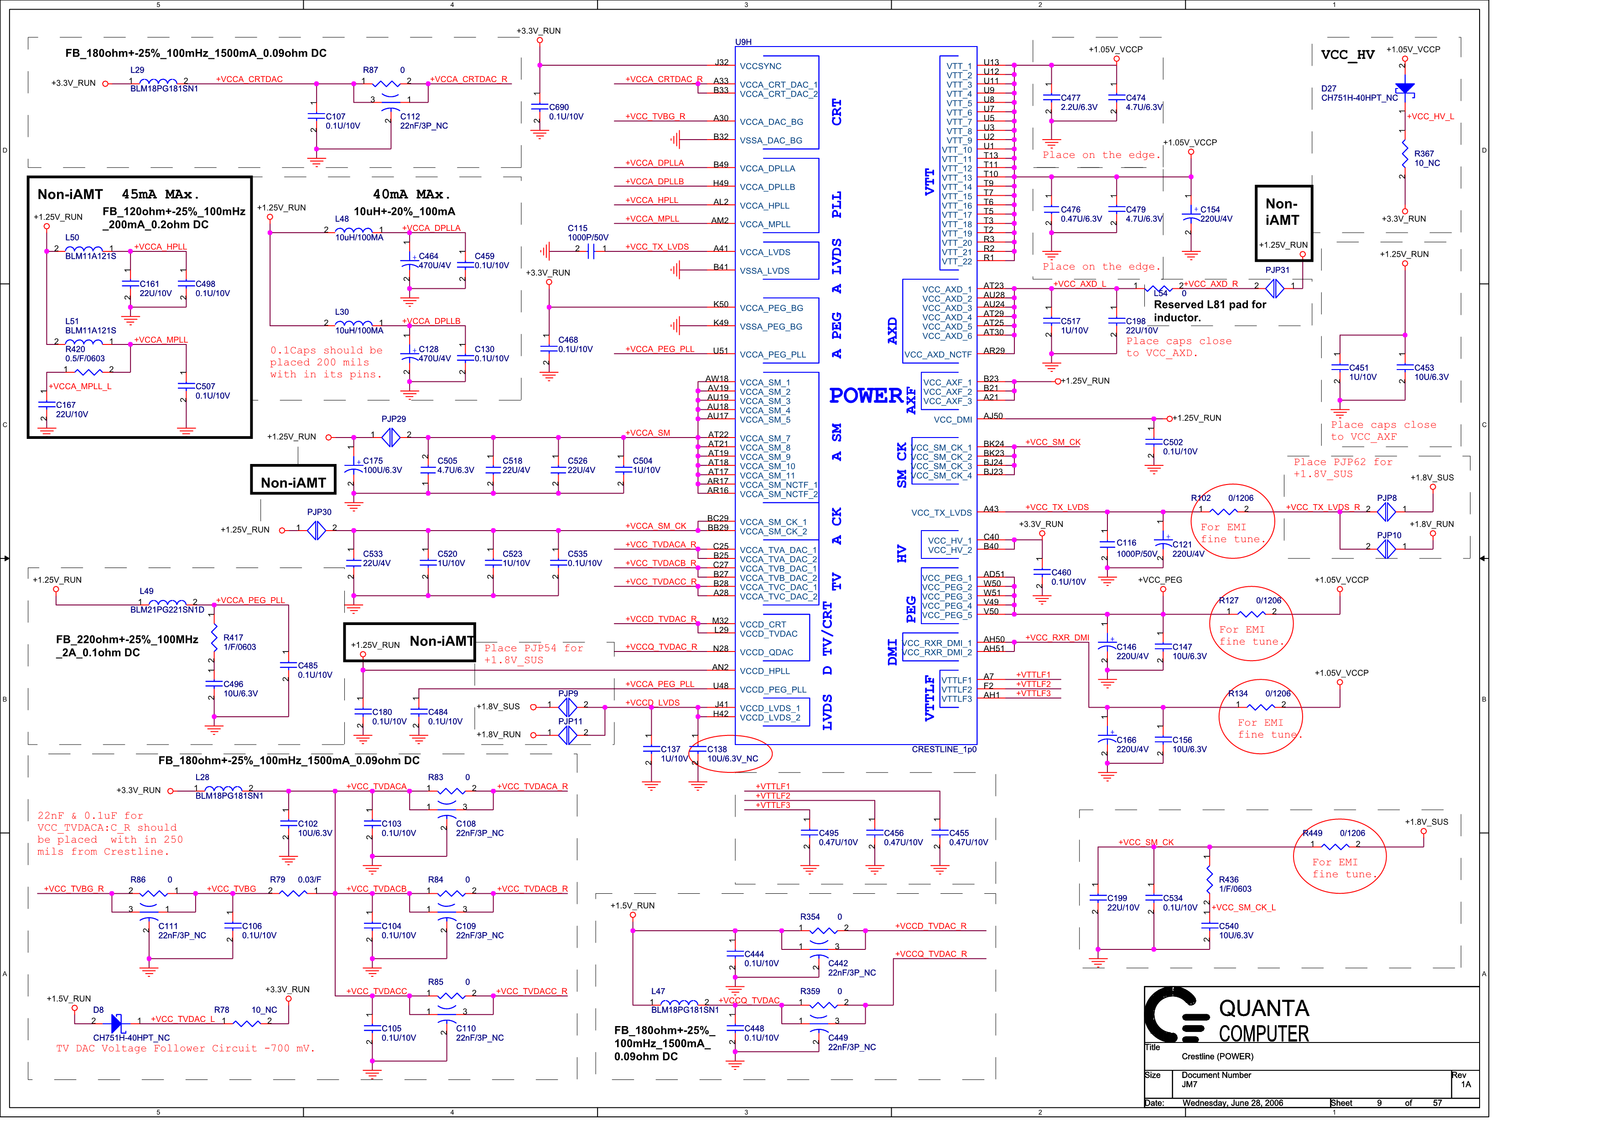 Microwave Oven Wiring Diagram Will Be A Thing Schematic Keurig 2 0 Parts Circuit And Sharp Carousel With Polarities